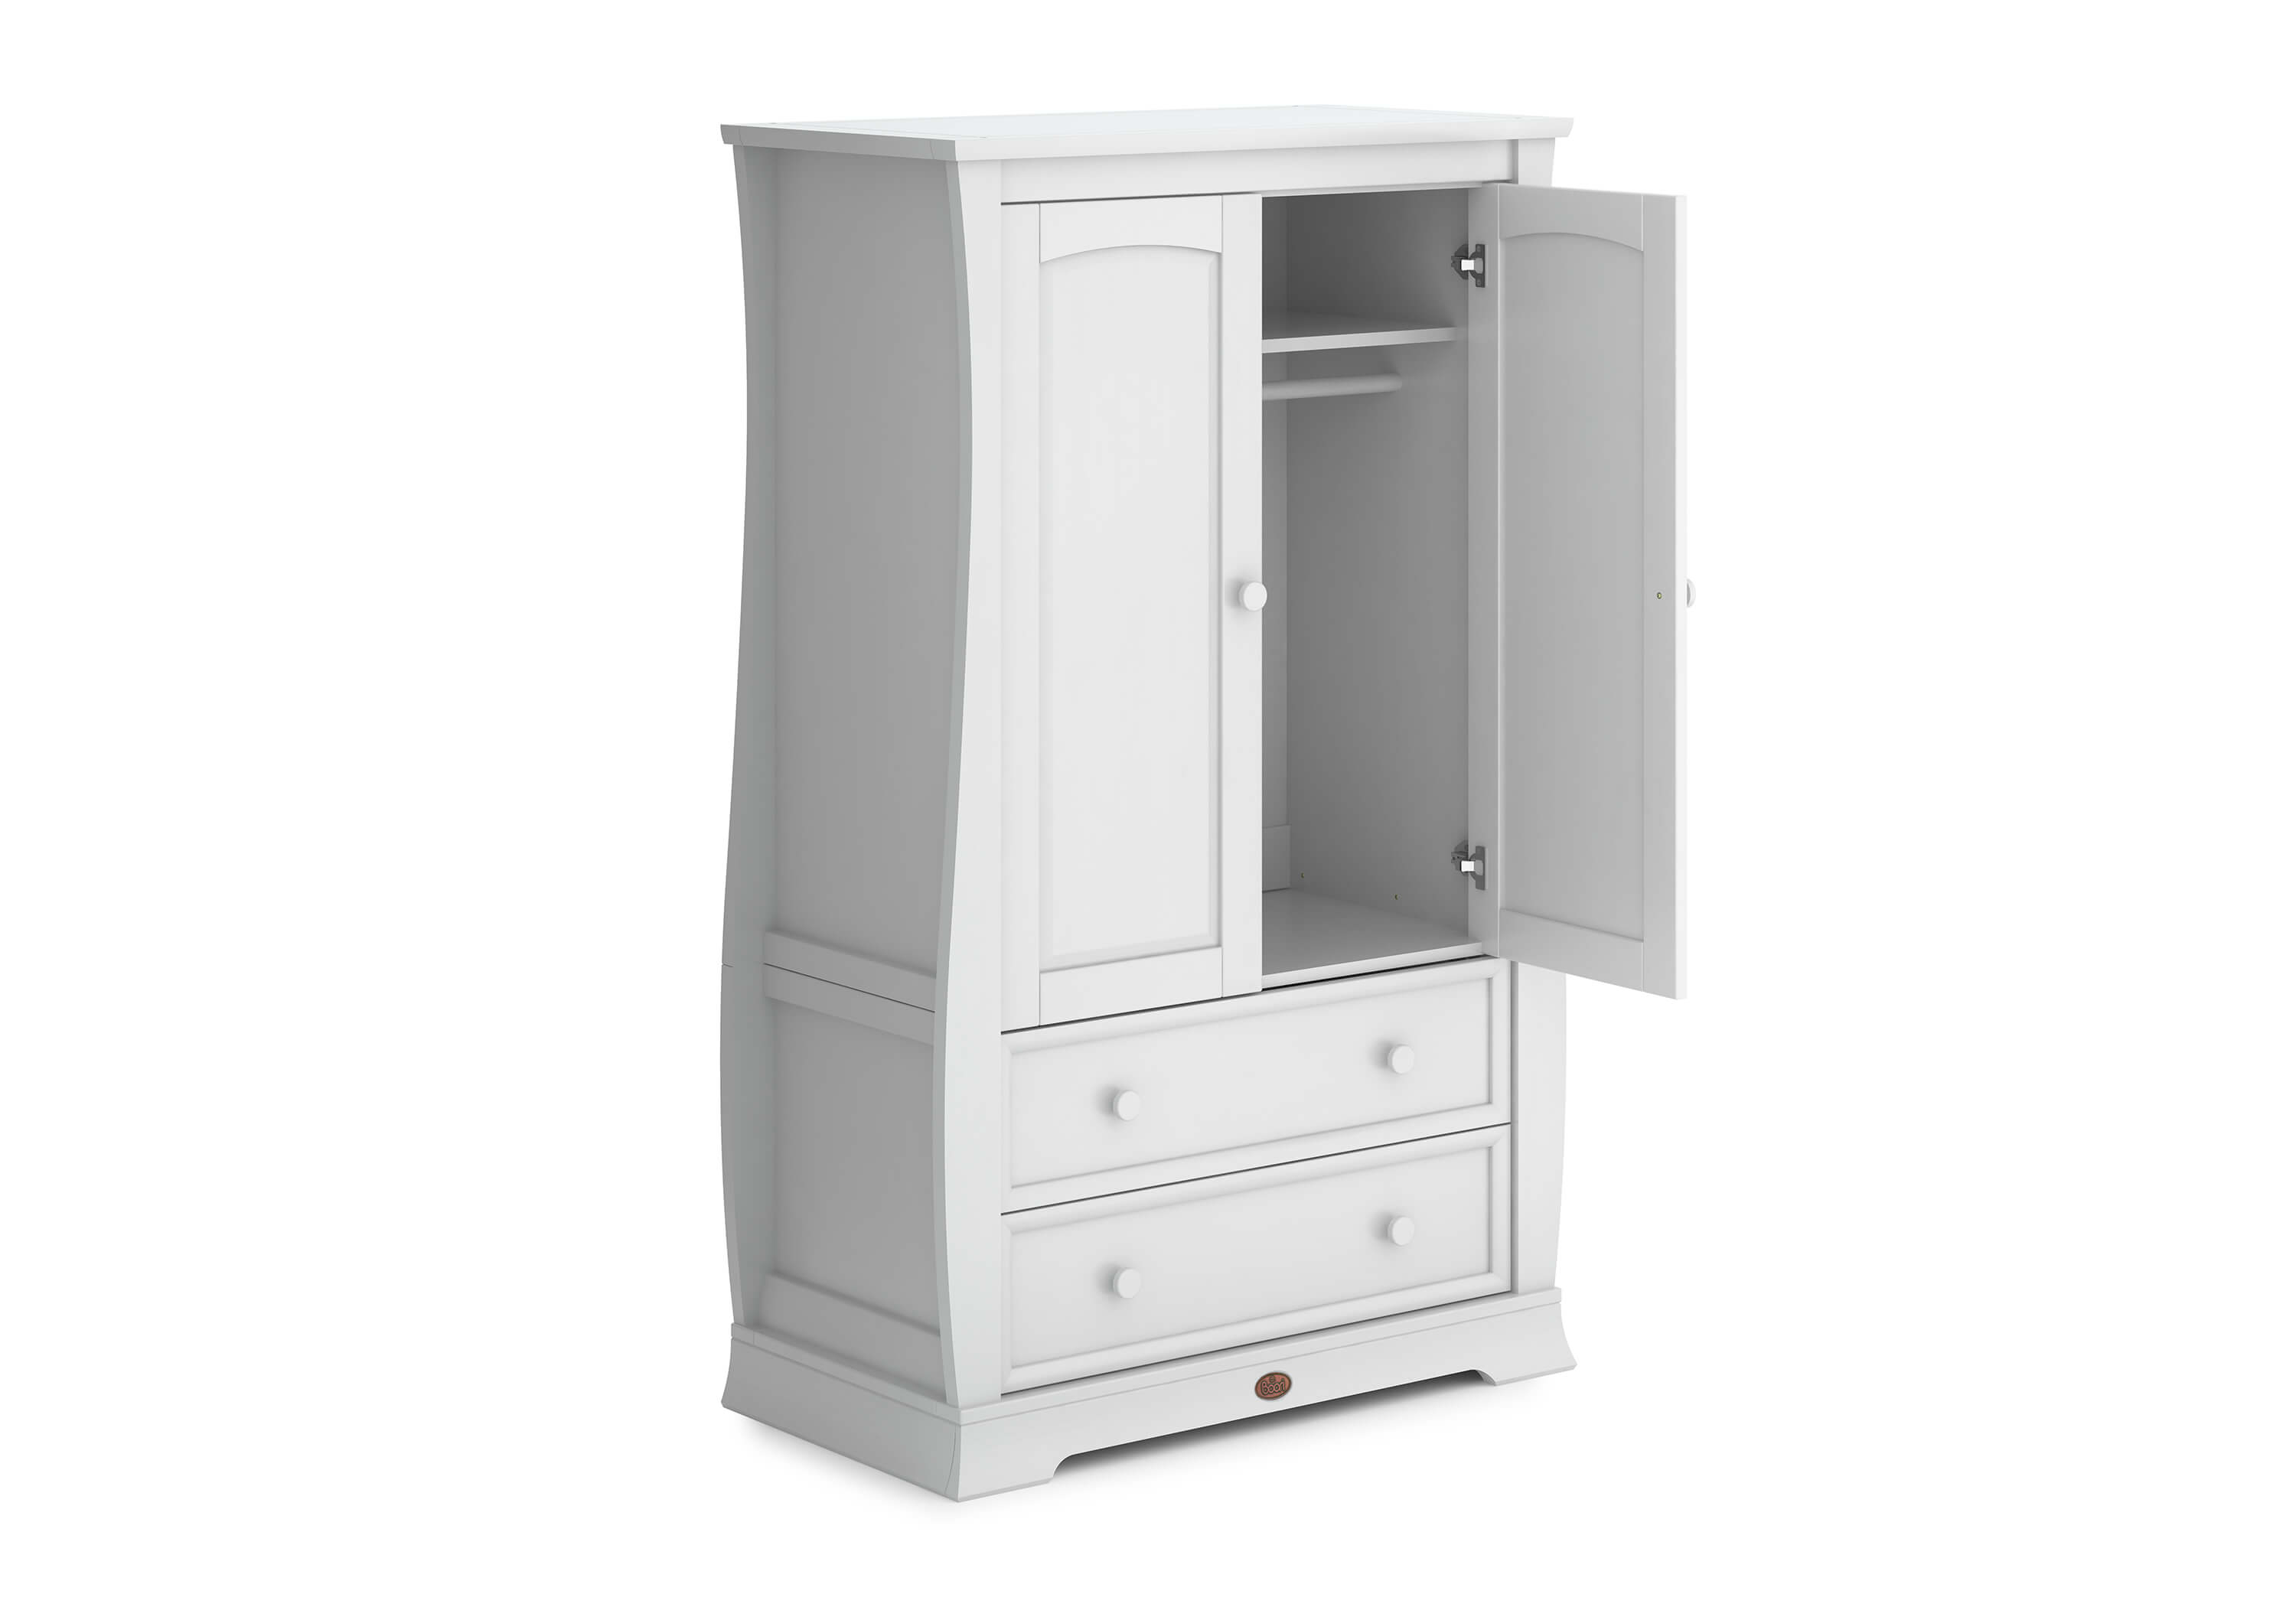 Sleigh Royale 3 Piece Room Set With